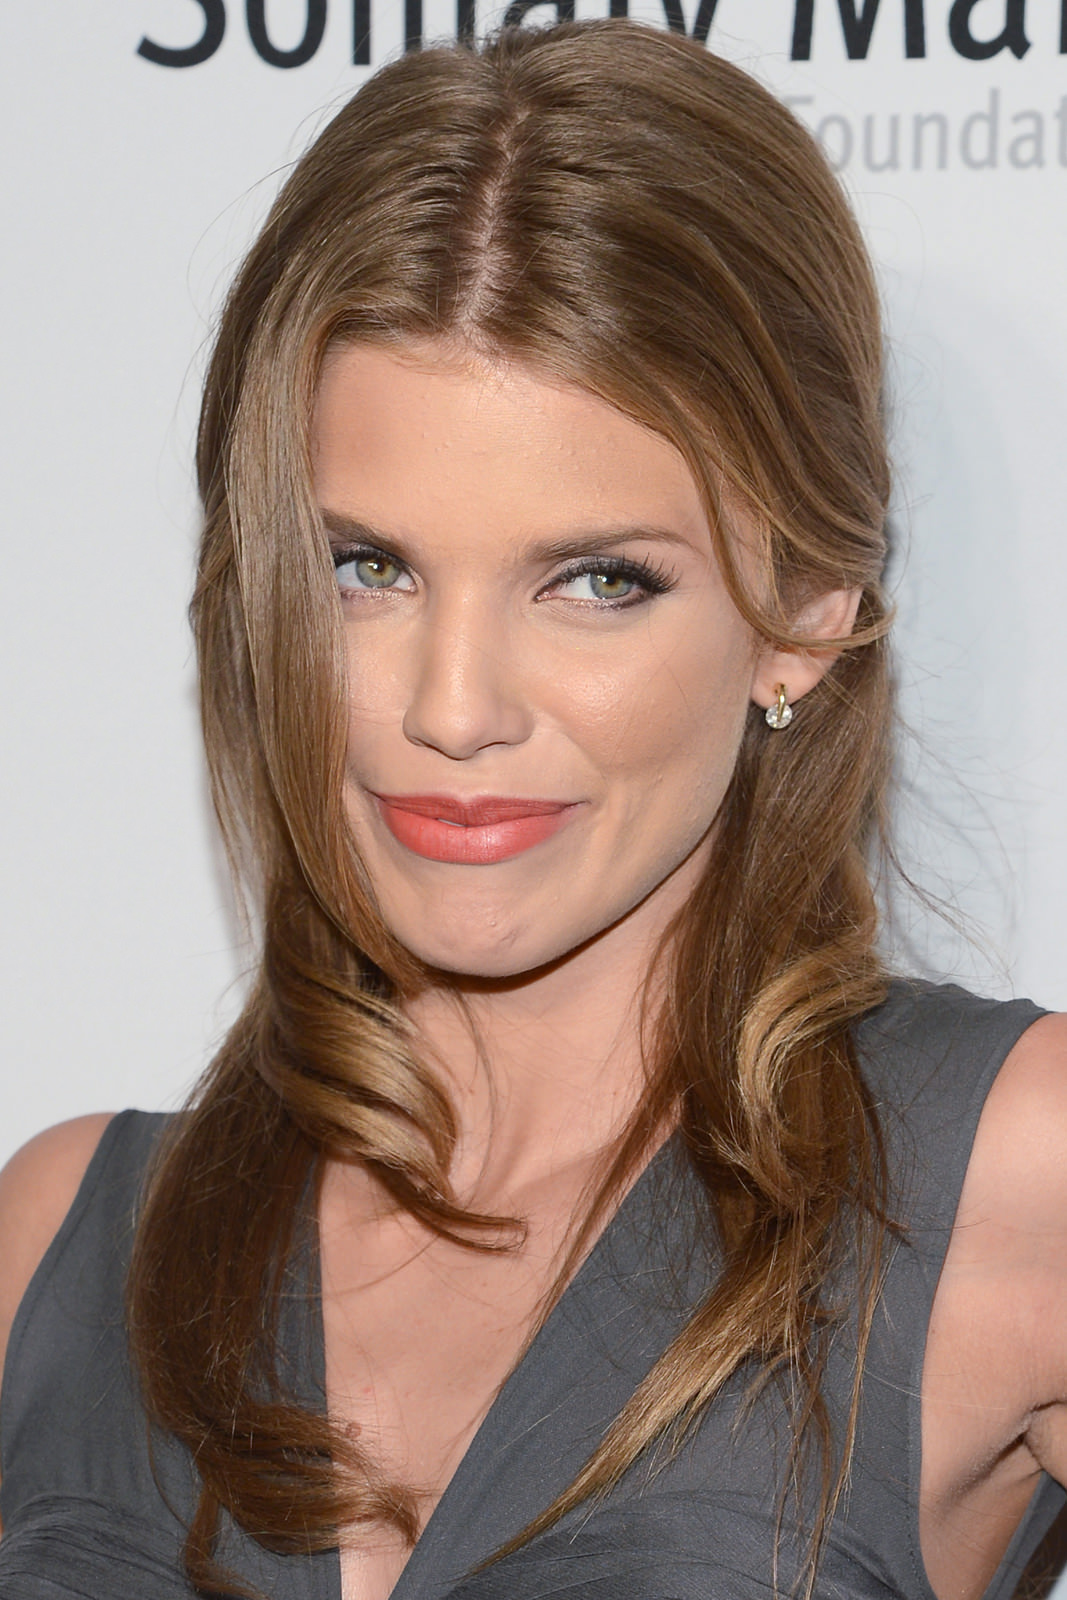 AnnaLynne McCord Photo Gallery